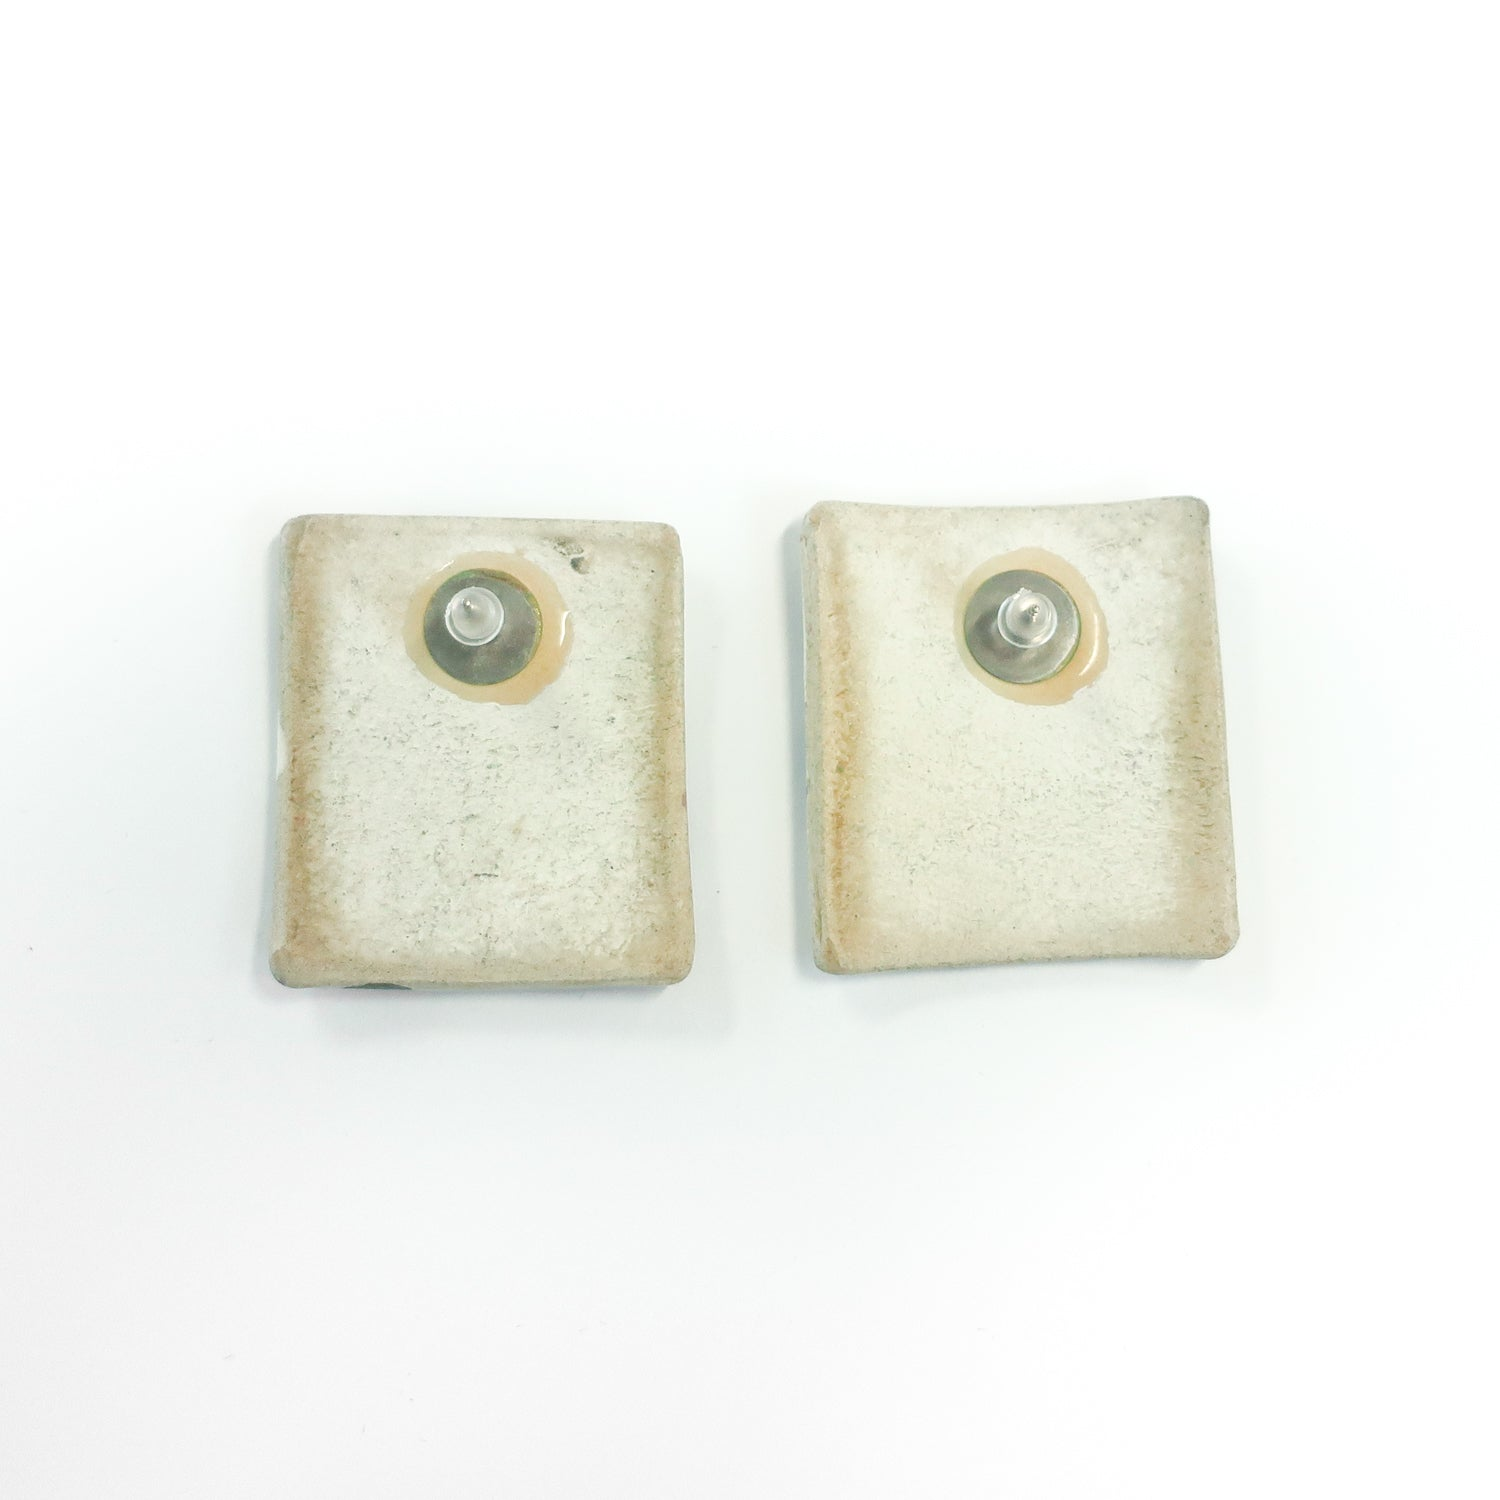 Second Room Vintage Clothing. Vintage rectangular white ceramic earrings with hand painted watercolor abstract design; 4.2 cm tall and 3.9 cm wide. As these are hand painted, each one is slightly different. Please note that these are ceramic, and therefore fragile. Original earring backs have been replaced with new, clear silicone backings. Free North American shipping on all orders.